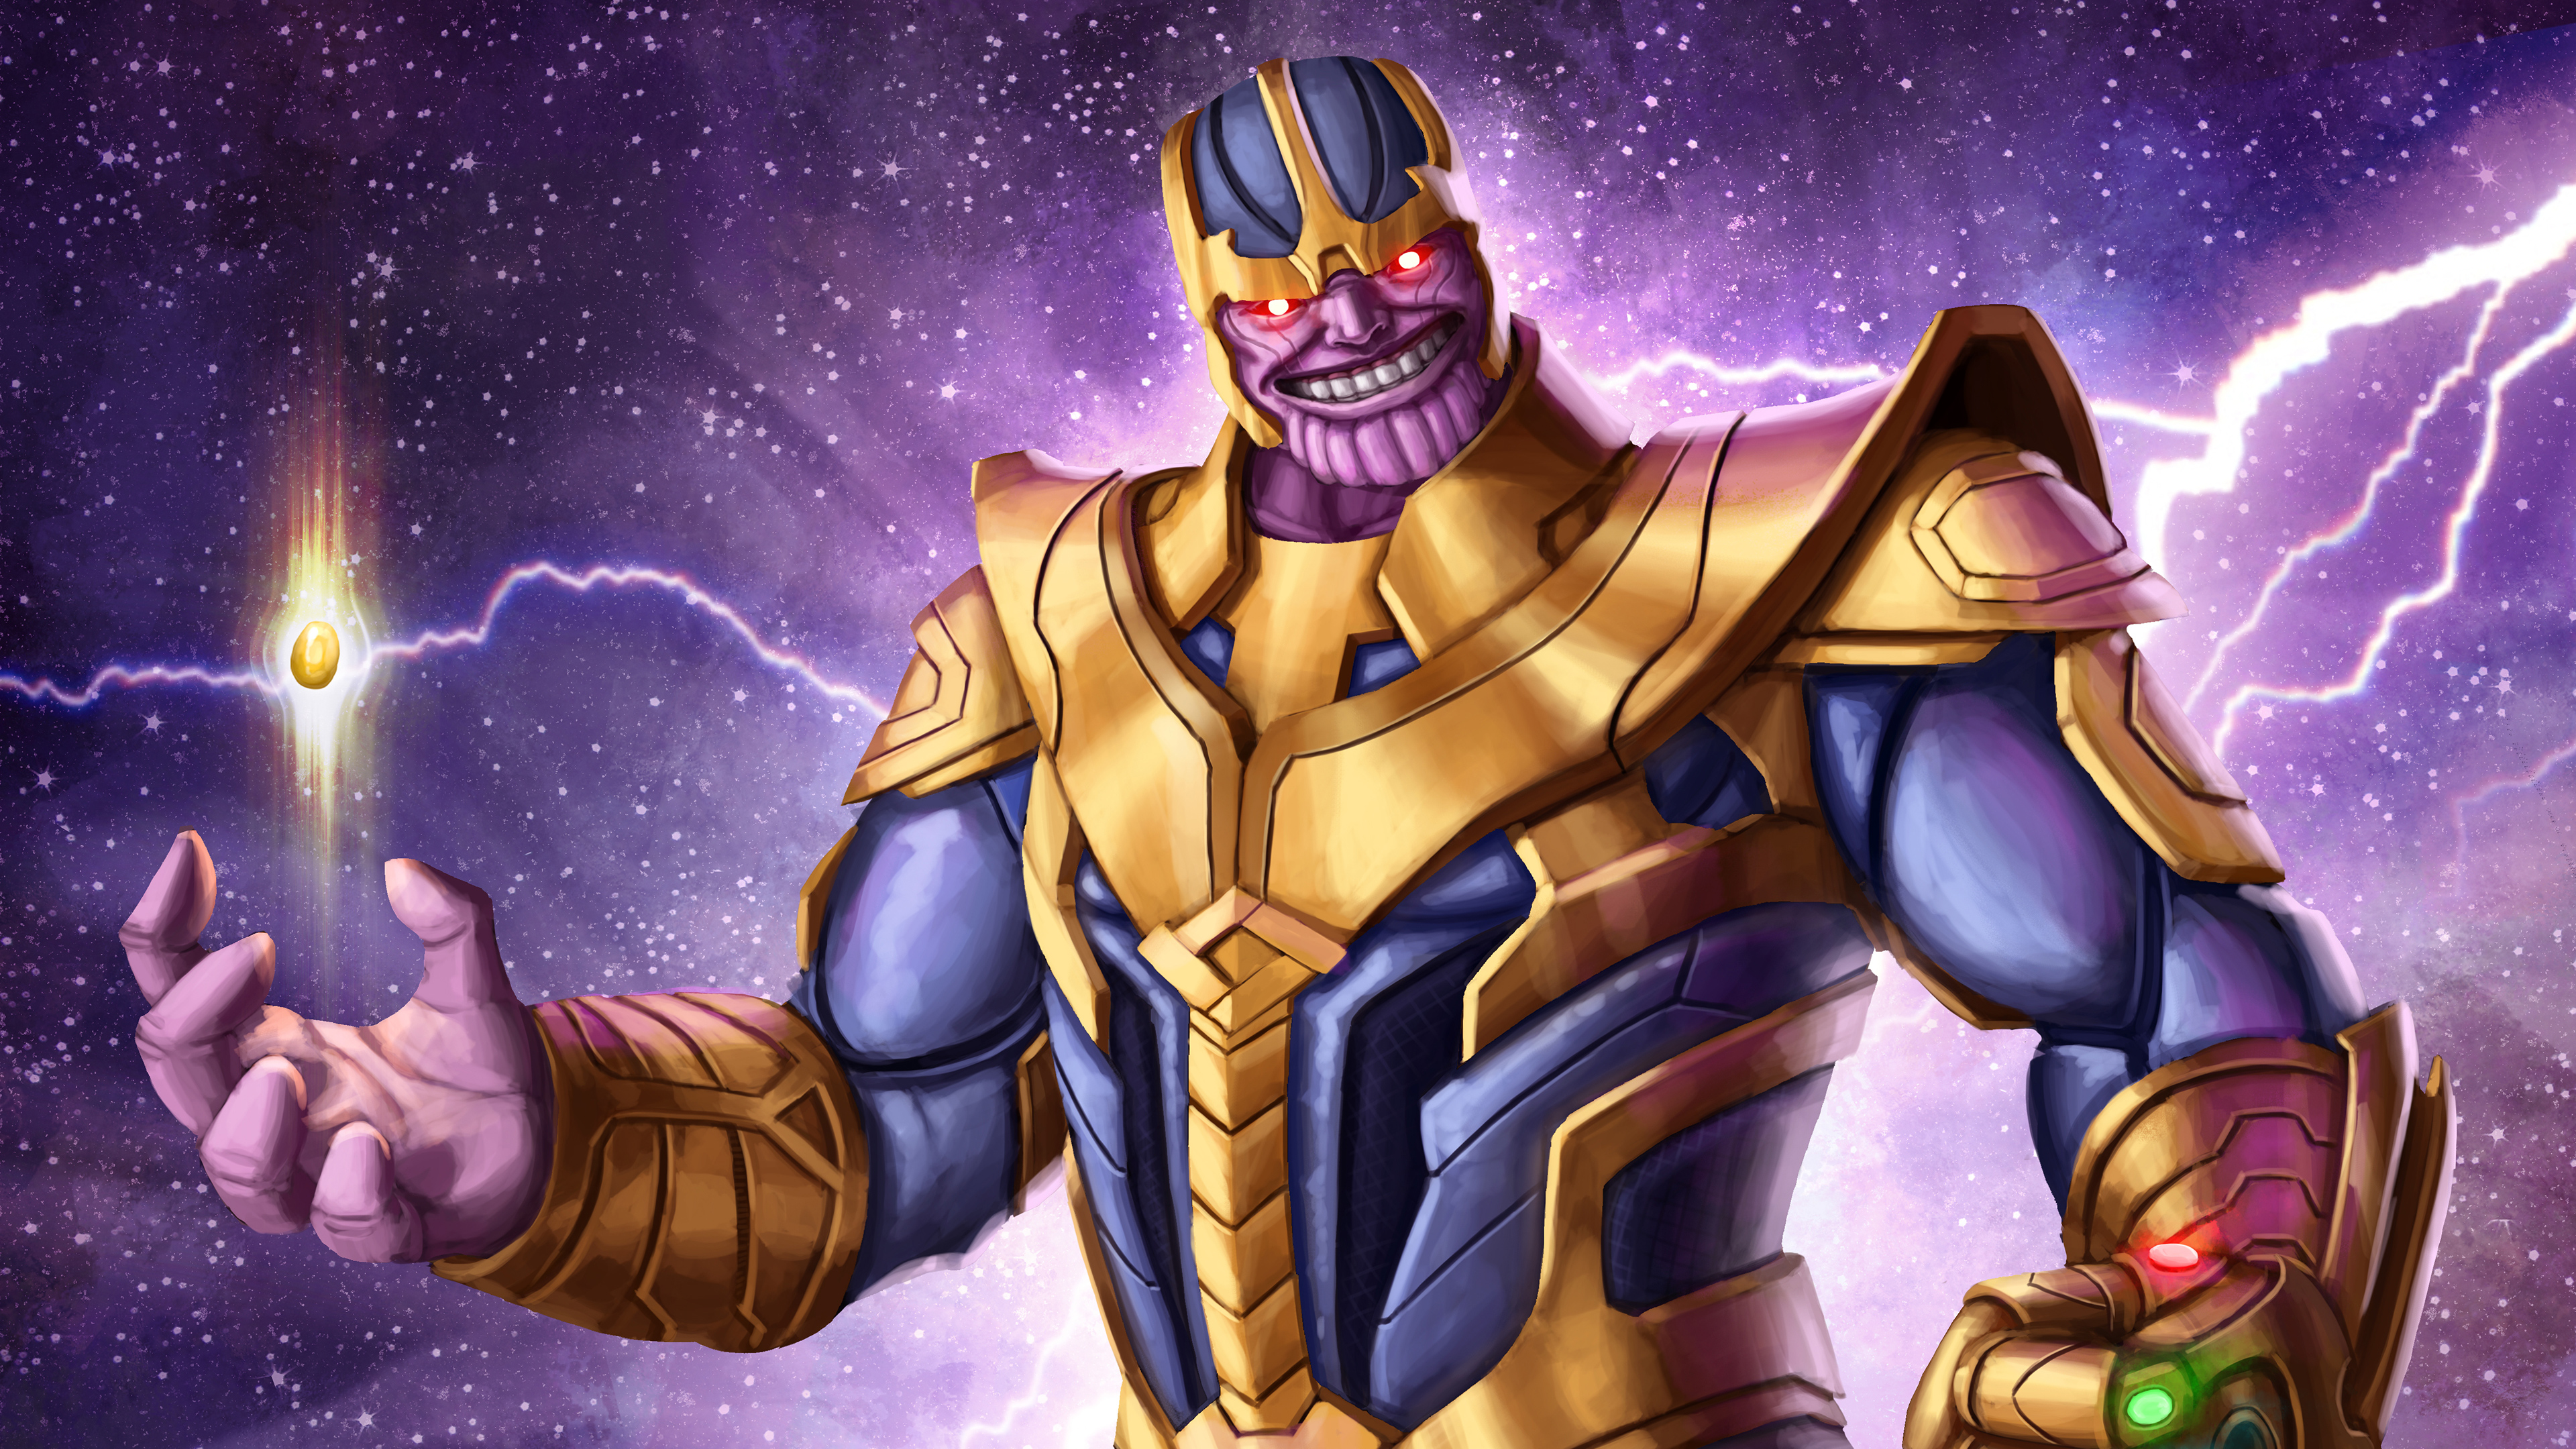 Thanos 4k Arts Hd Superheroes 4k Wallpapers Images